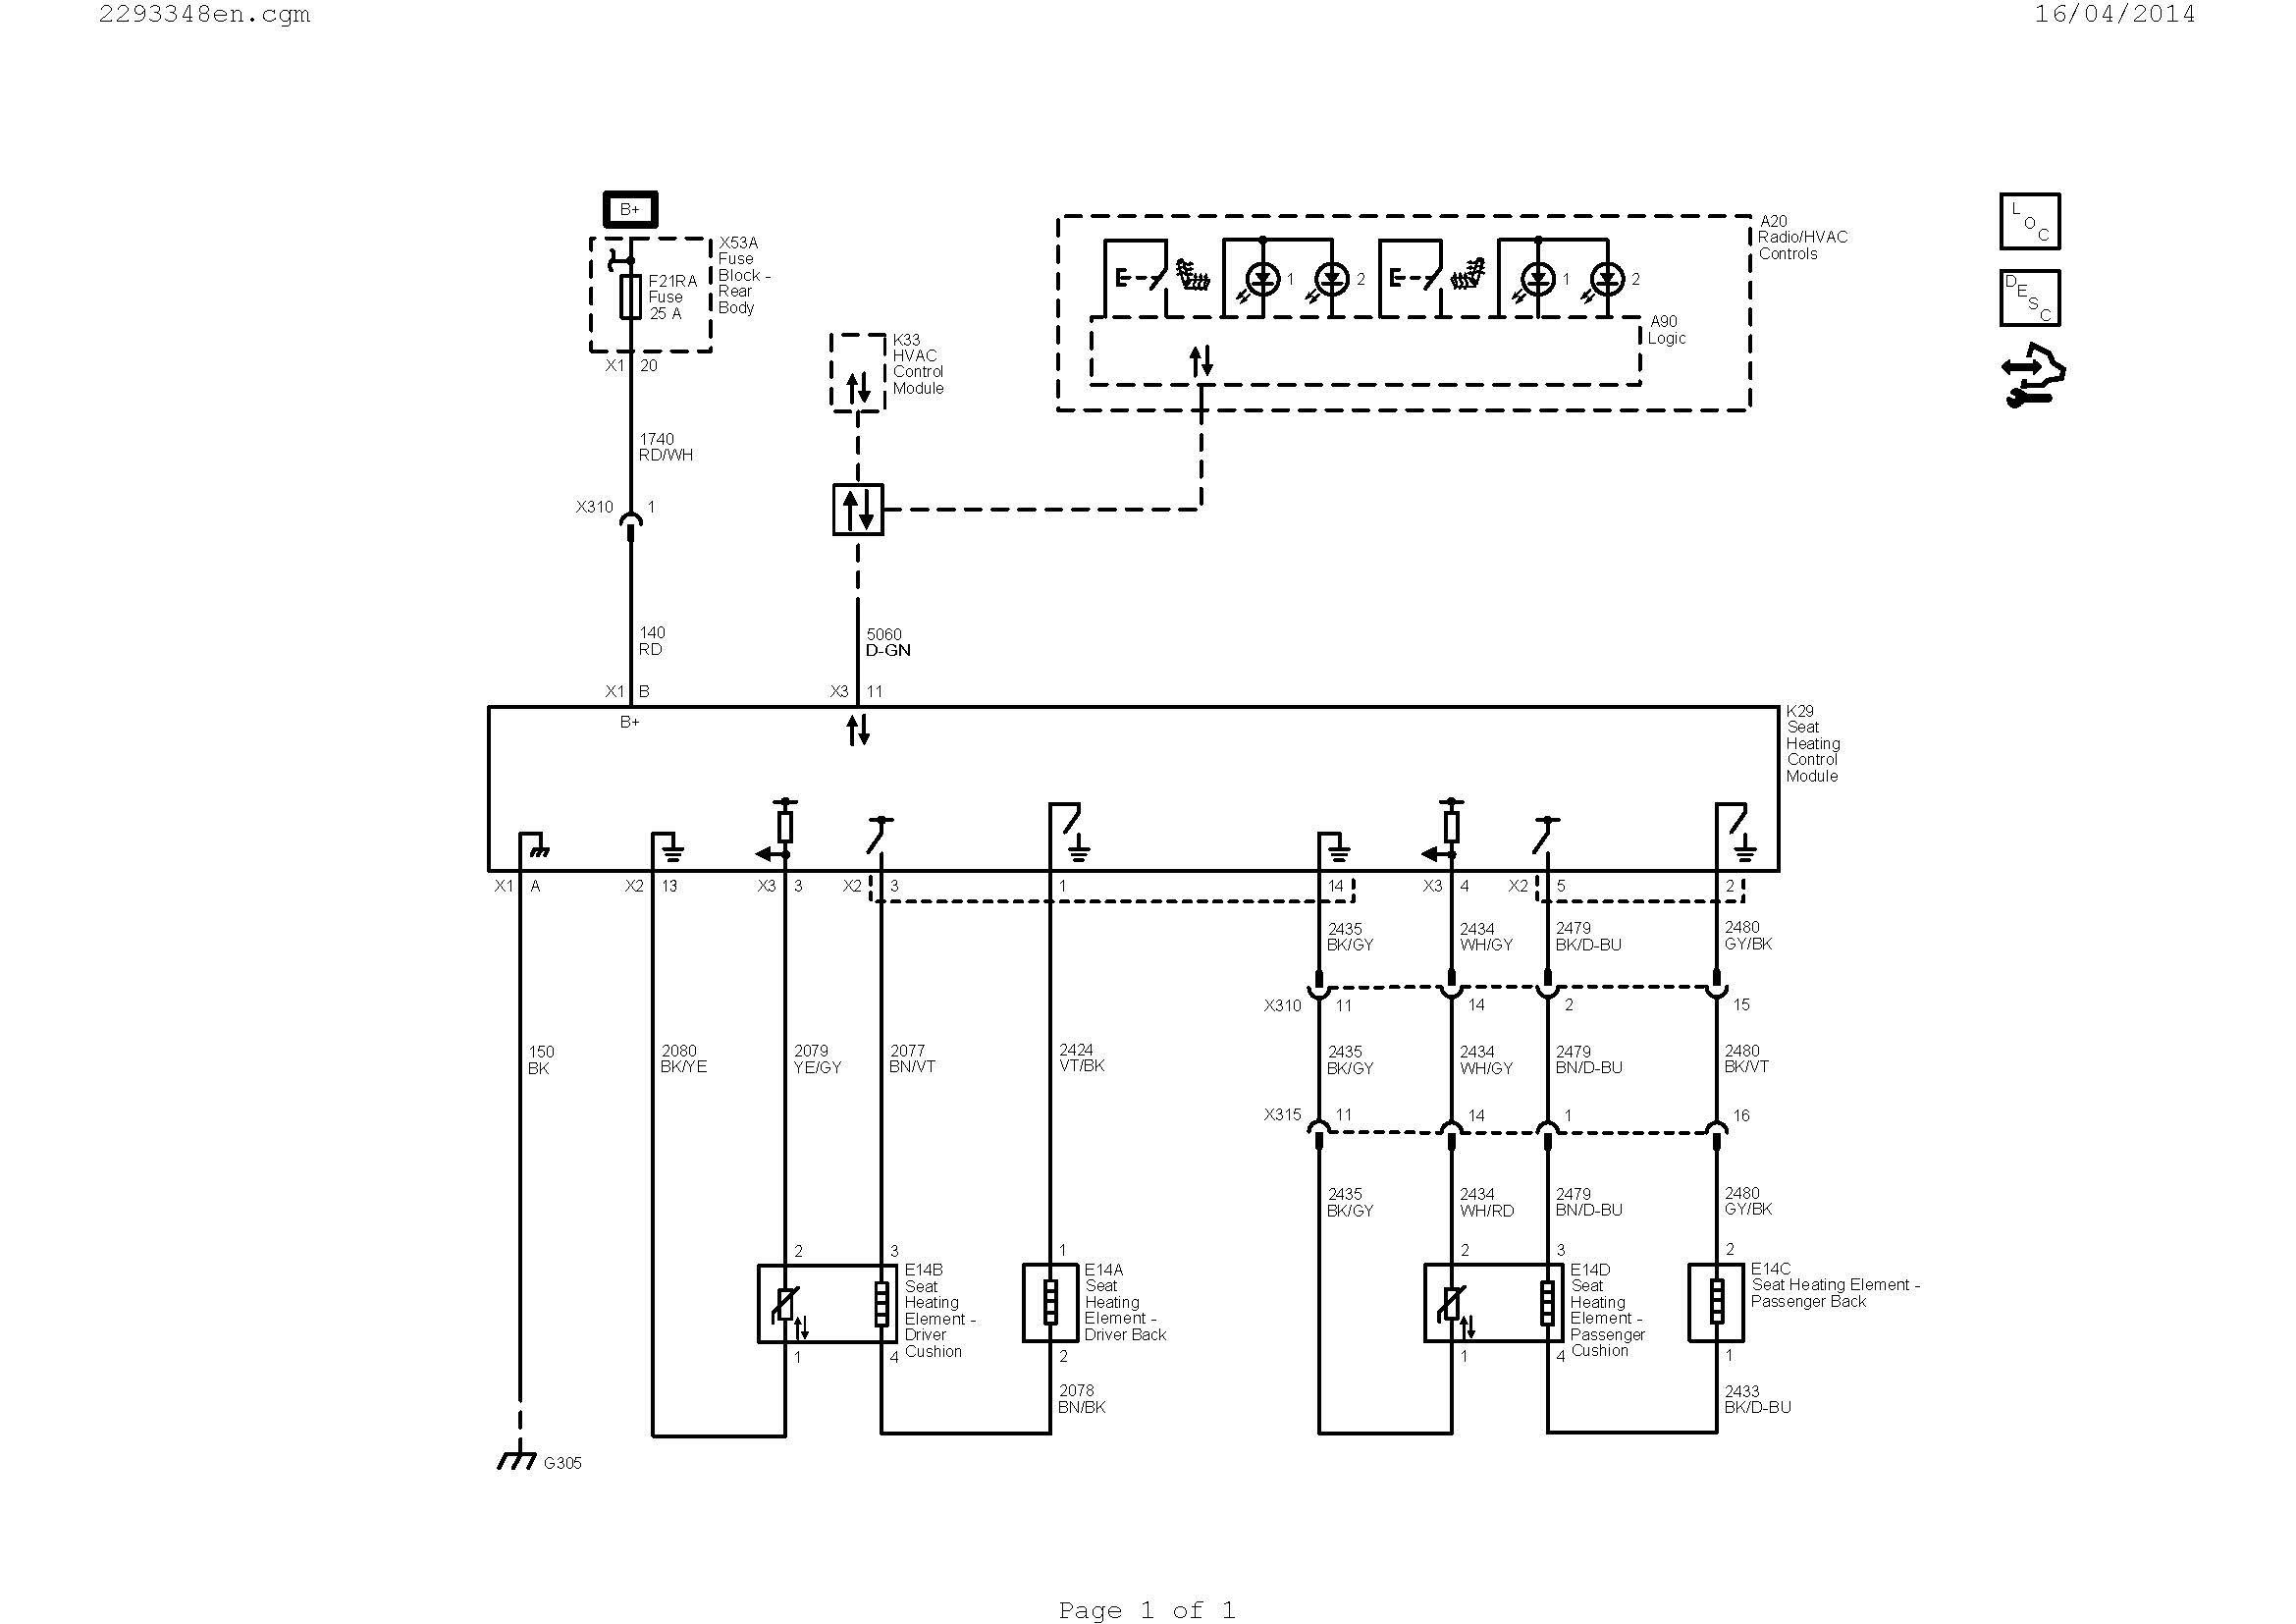 lennox wiring diagram Collection-lennox wiring diagram Download Wiring A Ac Thermostat Diagram New Wiring Diagram Ac Valid Hvac DOWNLOAD Wiring Diagram 17-l